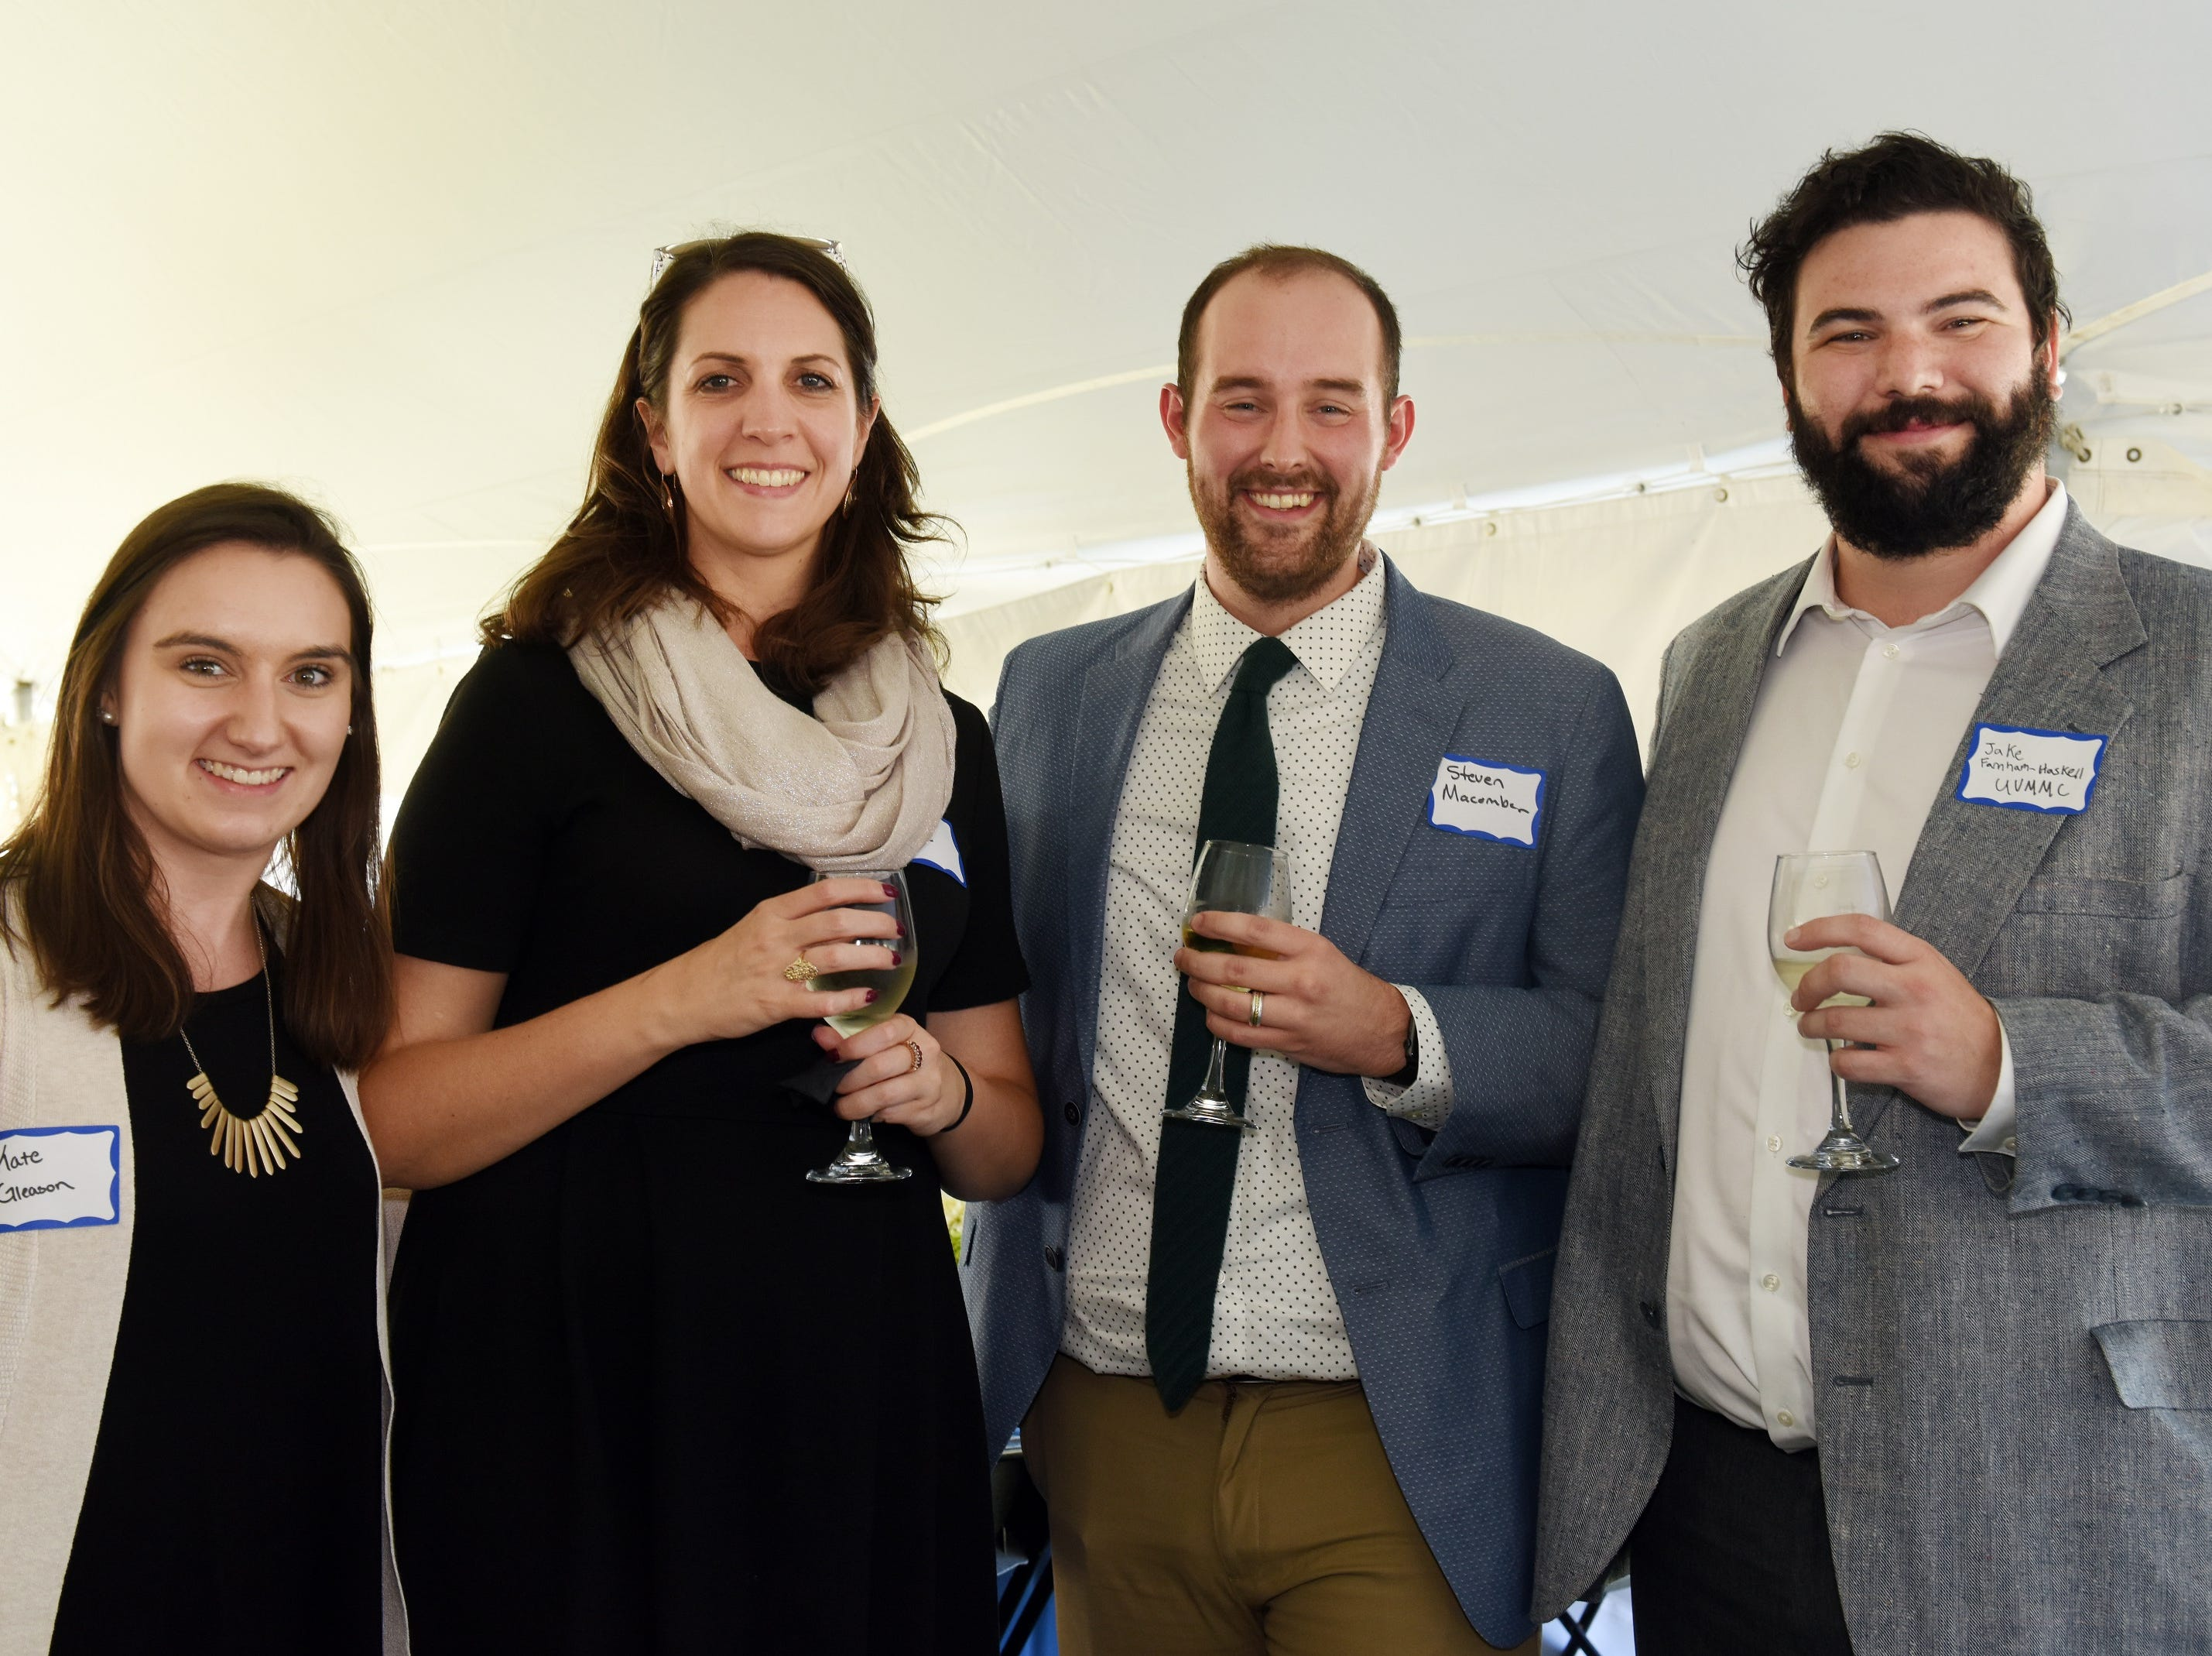 Kate Gleason of CBHB, from left, Meghan Brunovksy, Steven Macomber, and Jake Farnham-Haskell of UVM Medical Center Hospital attend the Coldwell Banker Hickok & Boardman 60th Anniversary on September 13, 2018, with current and past agents and community leaders in Burlington, VT.